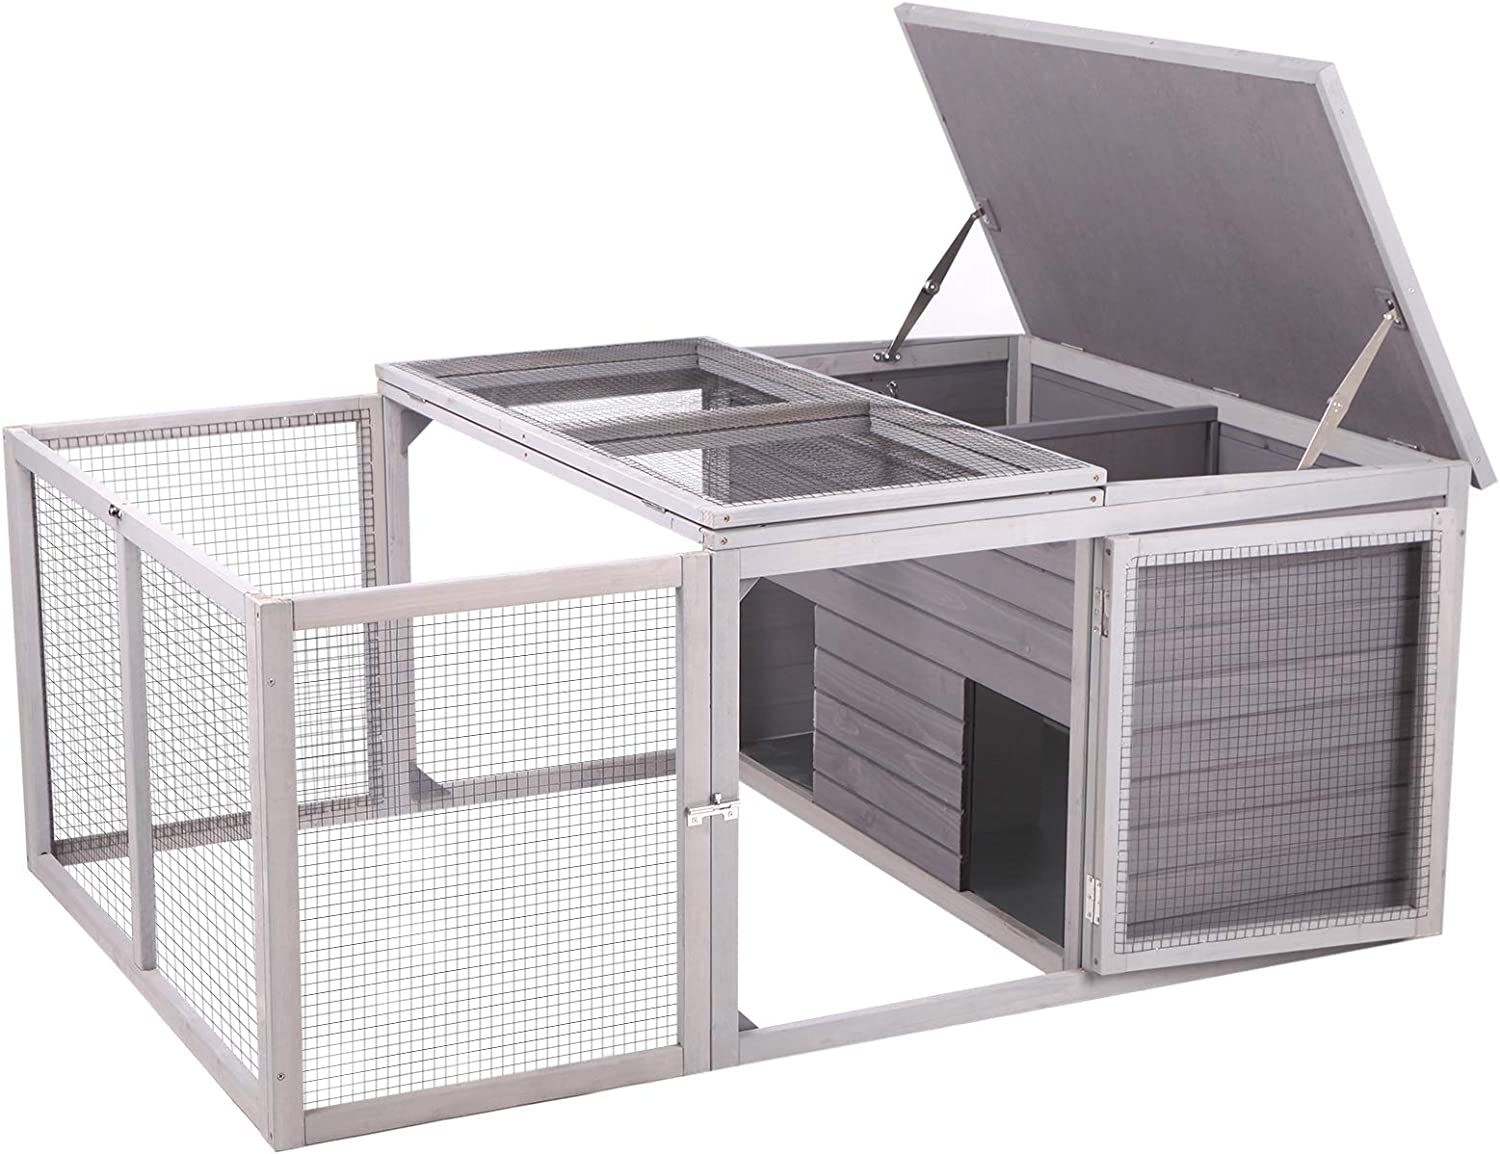 Poultry House Nesting Box Cages with Metal Trays and Feeding Habitat for Easy Cleaning,Black